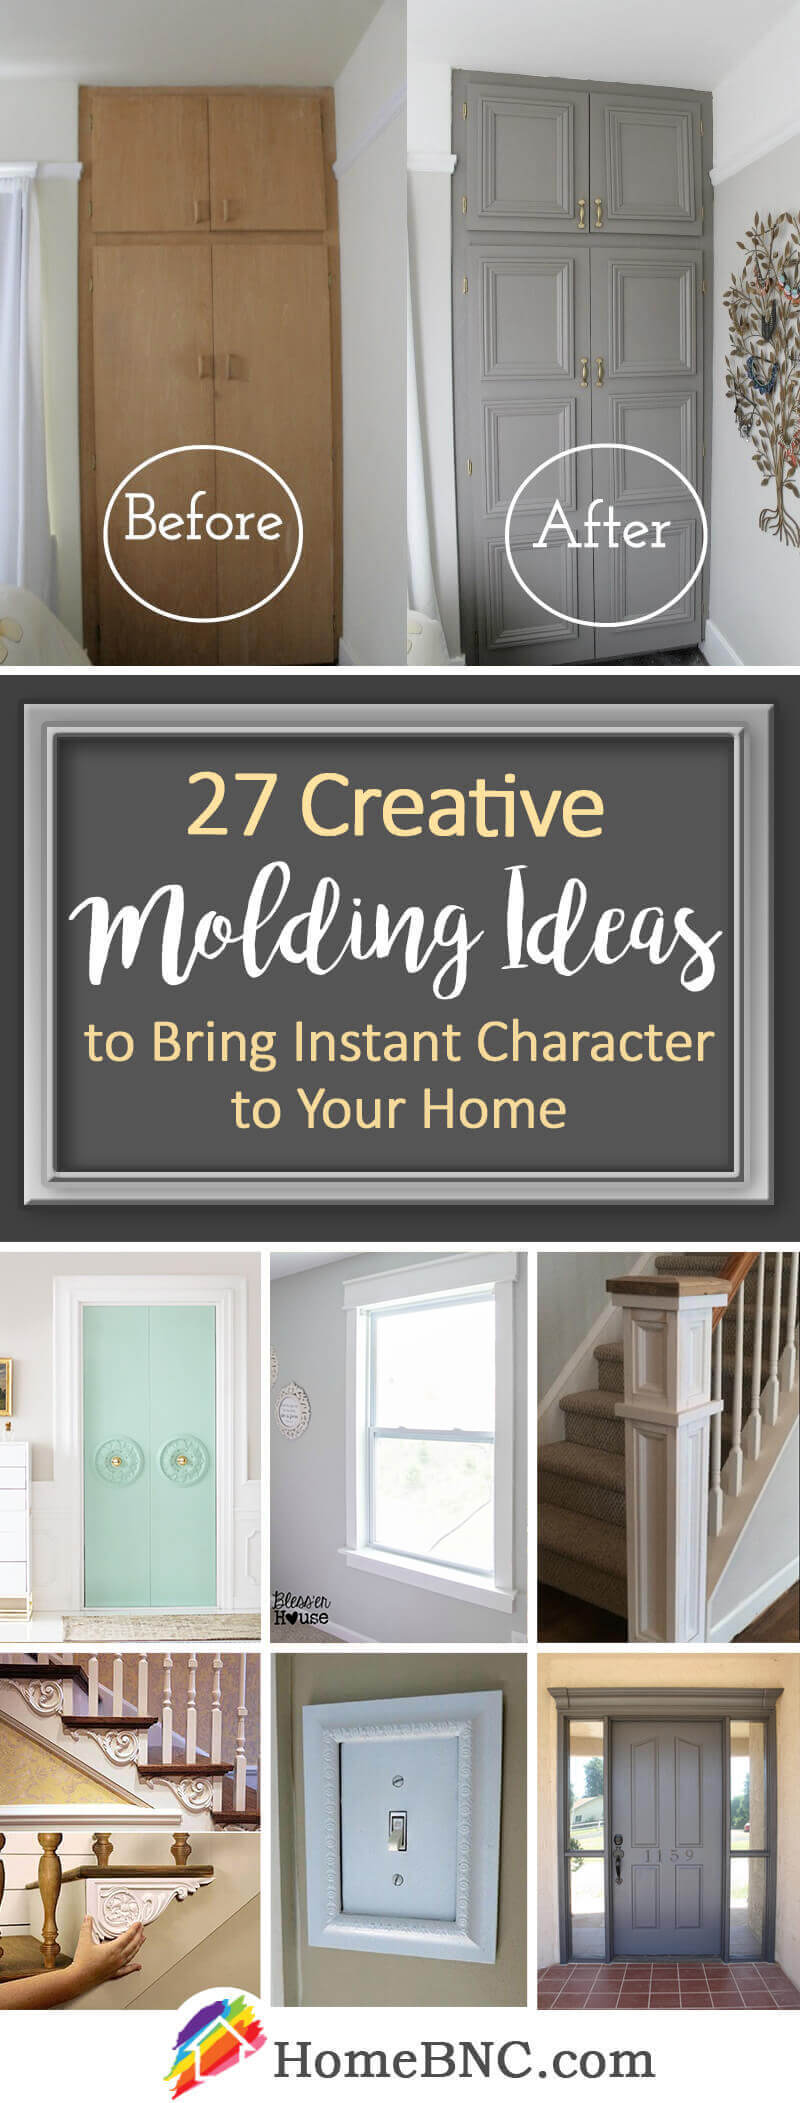 27 Unique Molding Ideas To Make Your Home Unforgettable